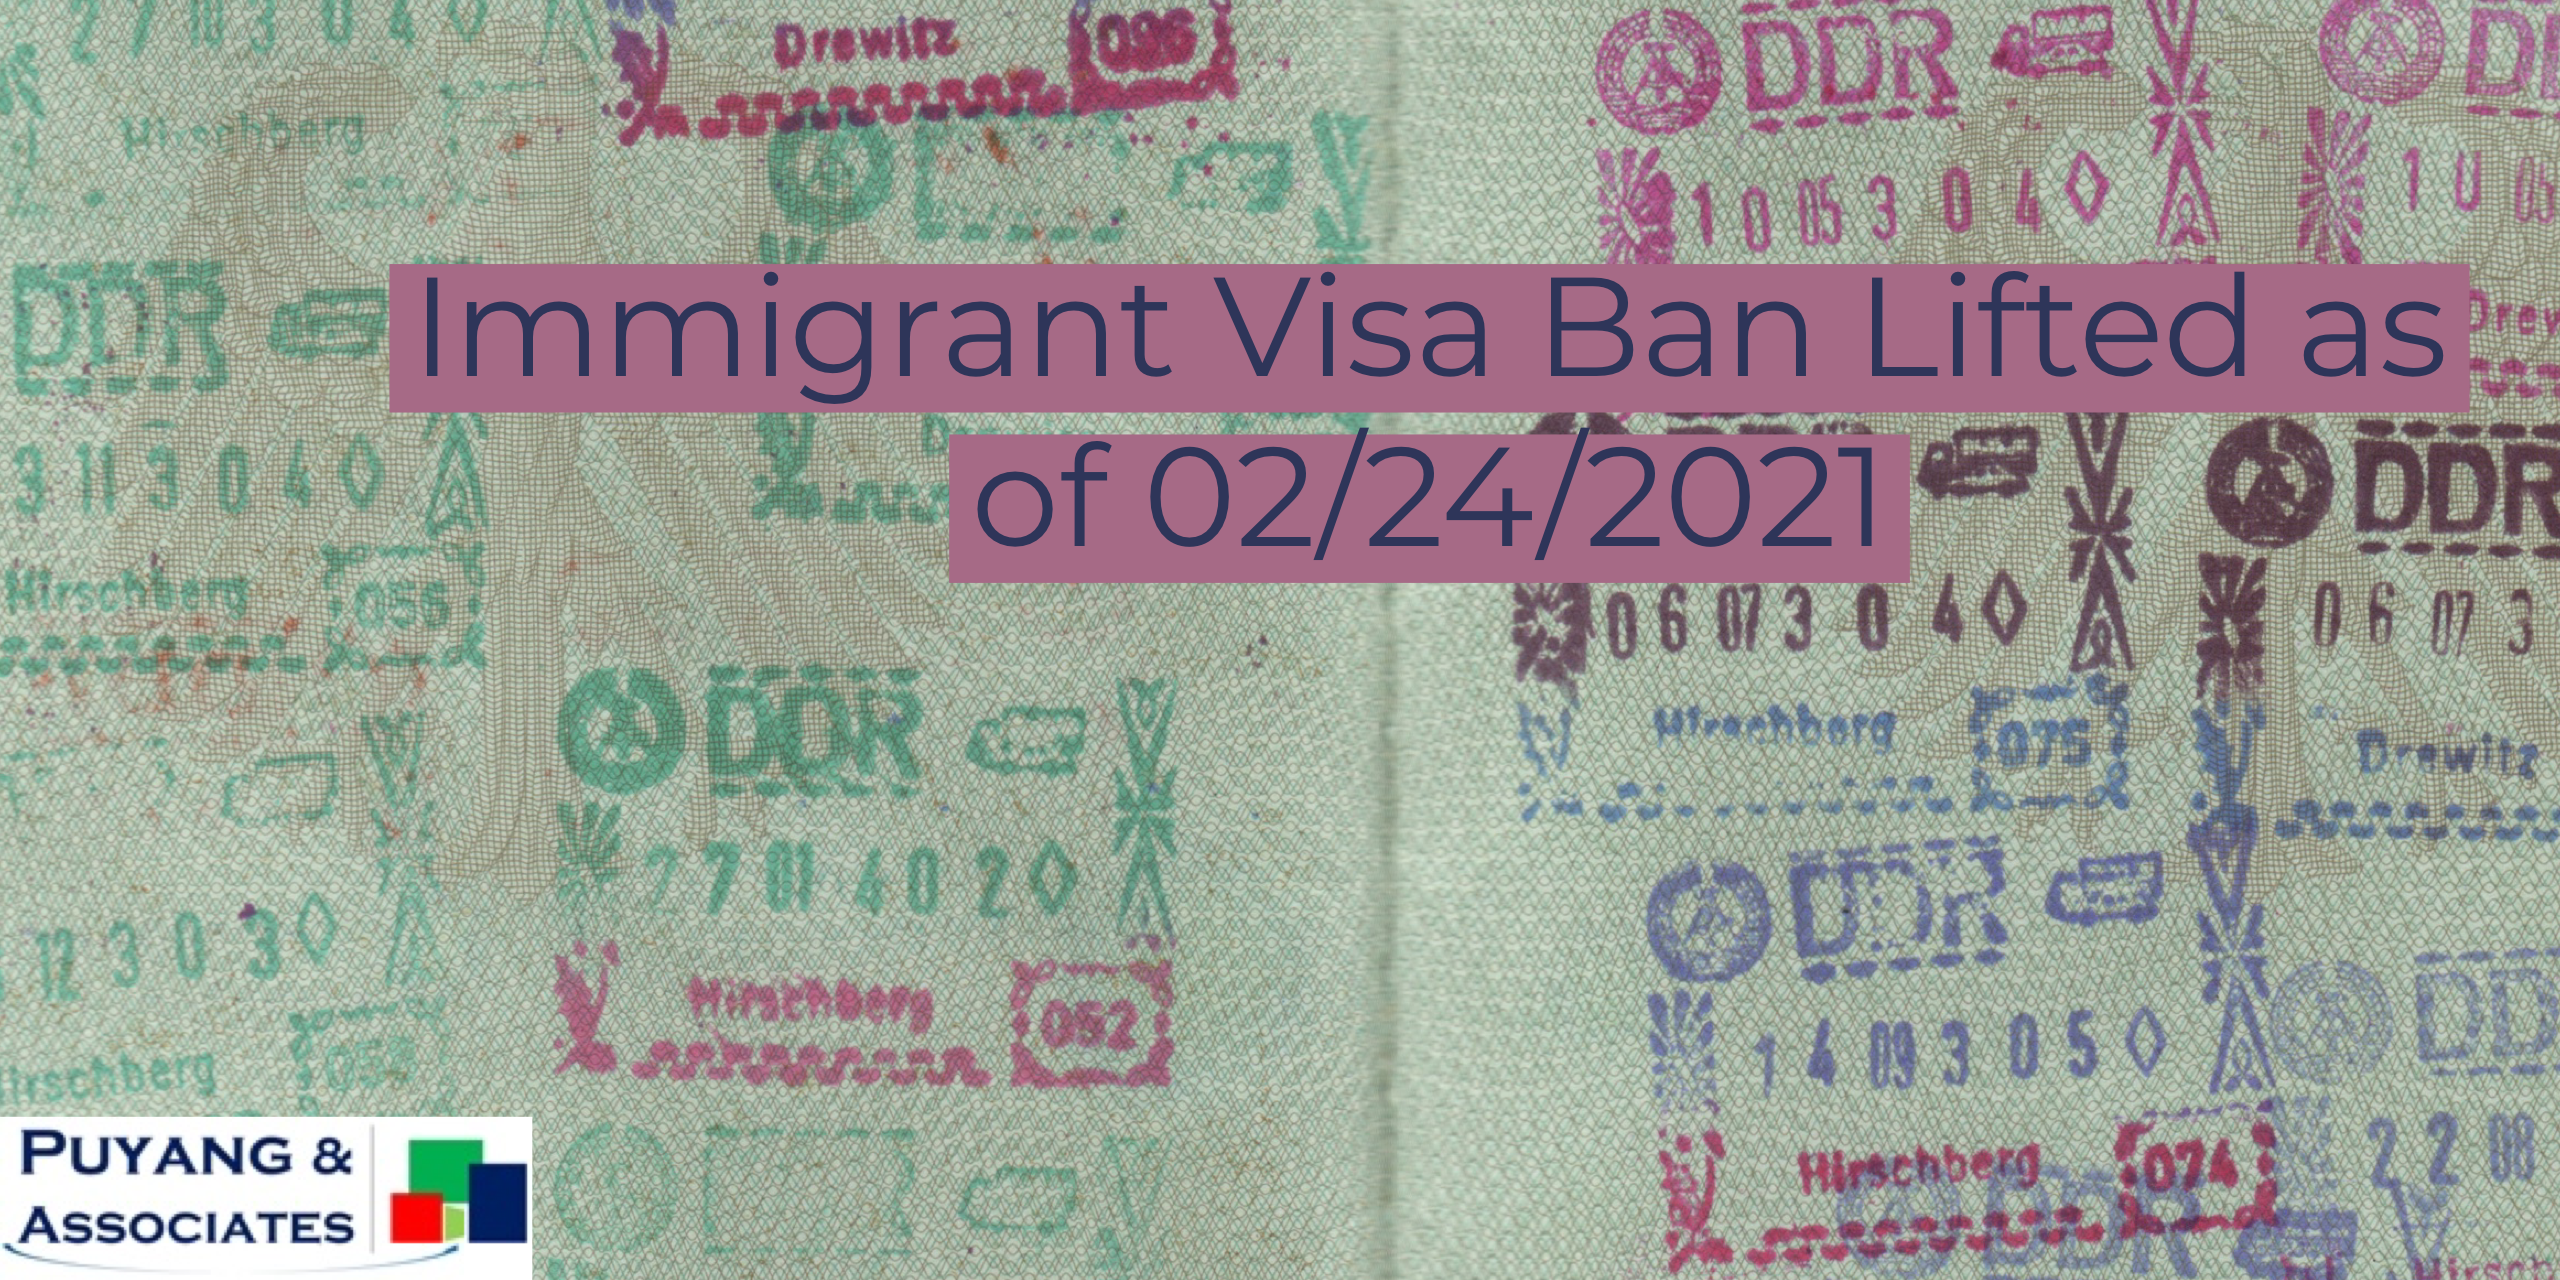 Immigrant Visa Ban Lifted